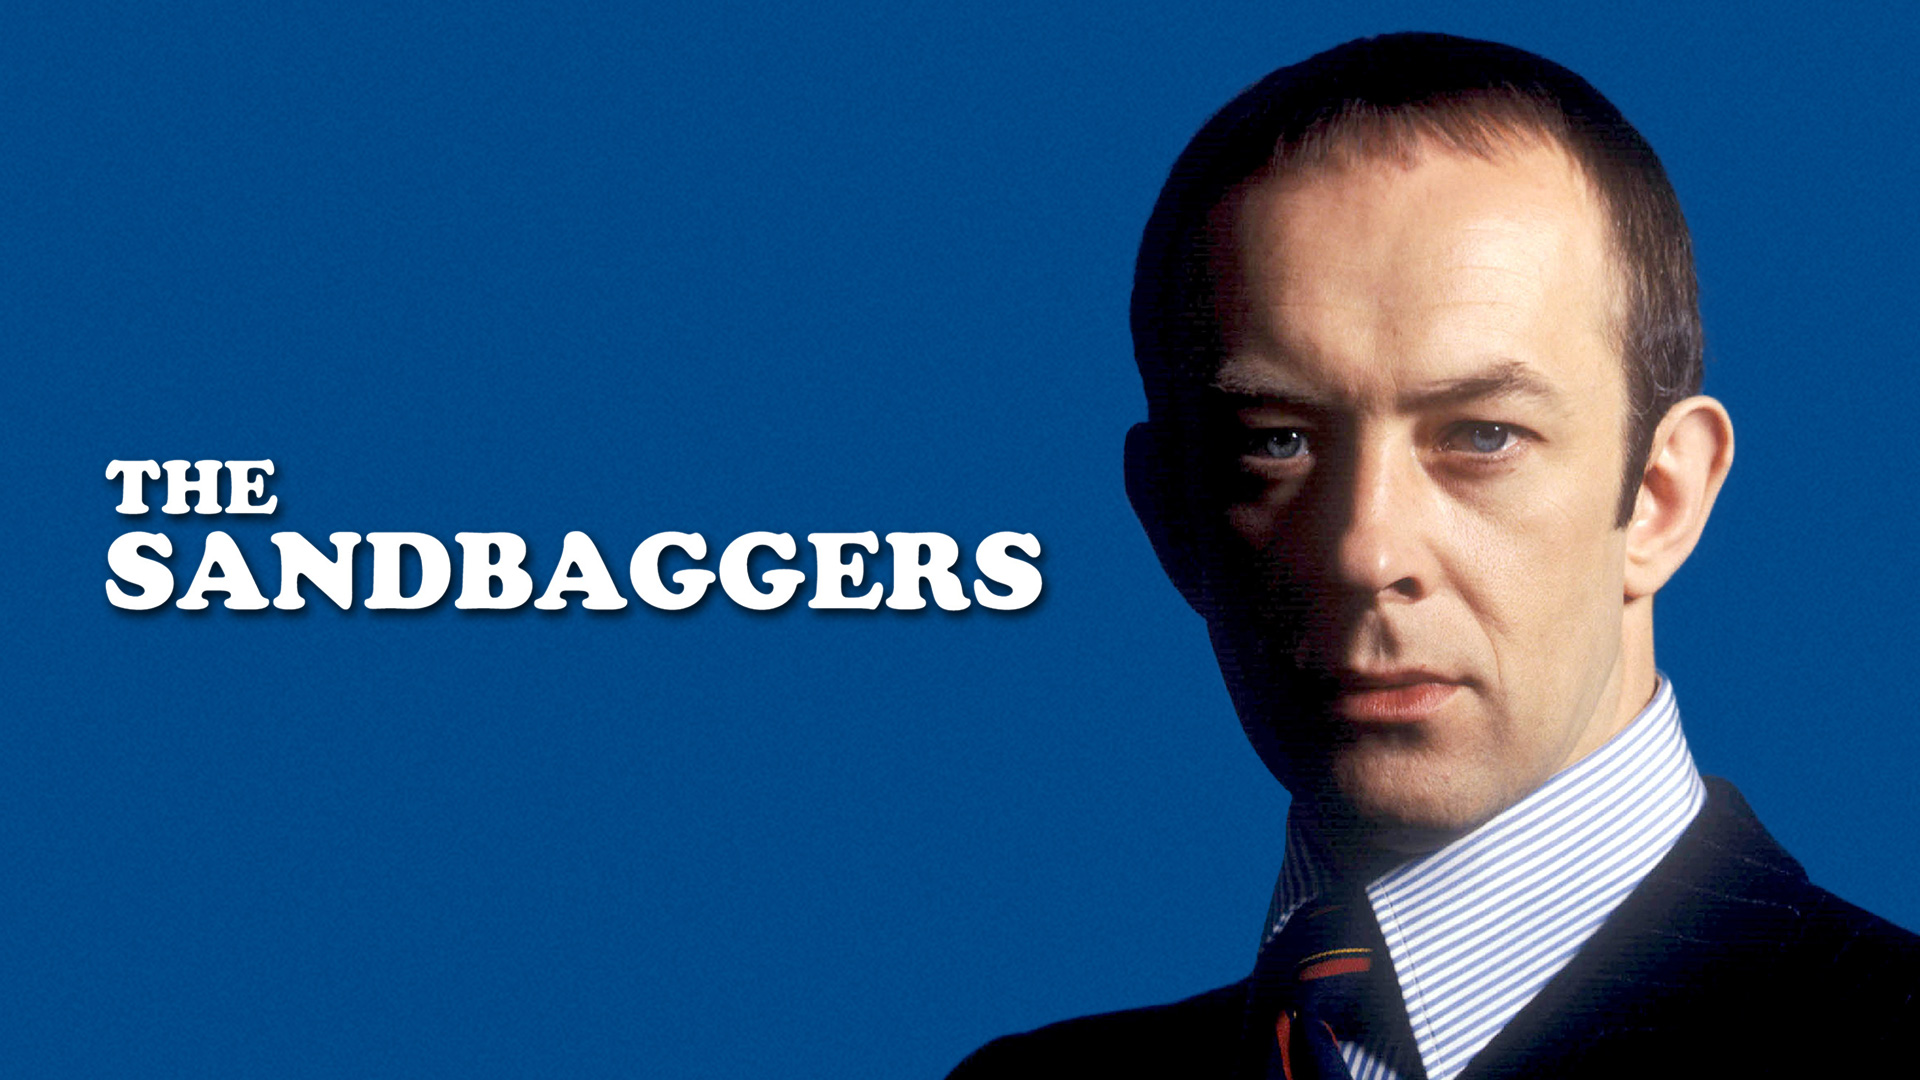 The Sandbaggers, Season 1